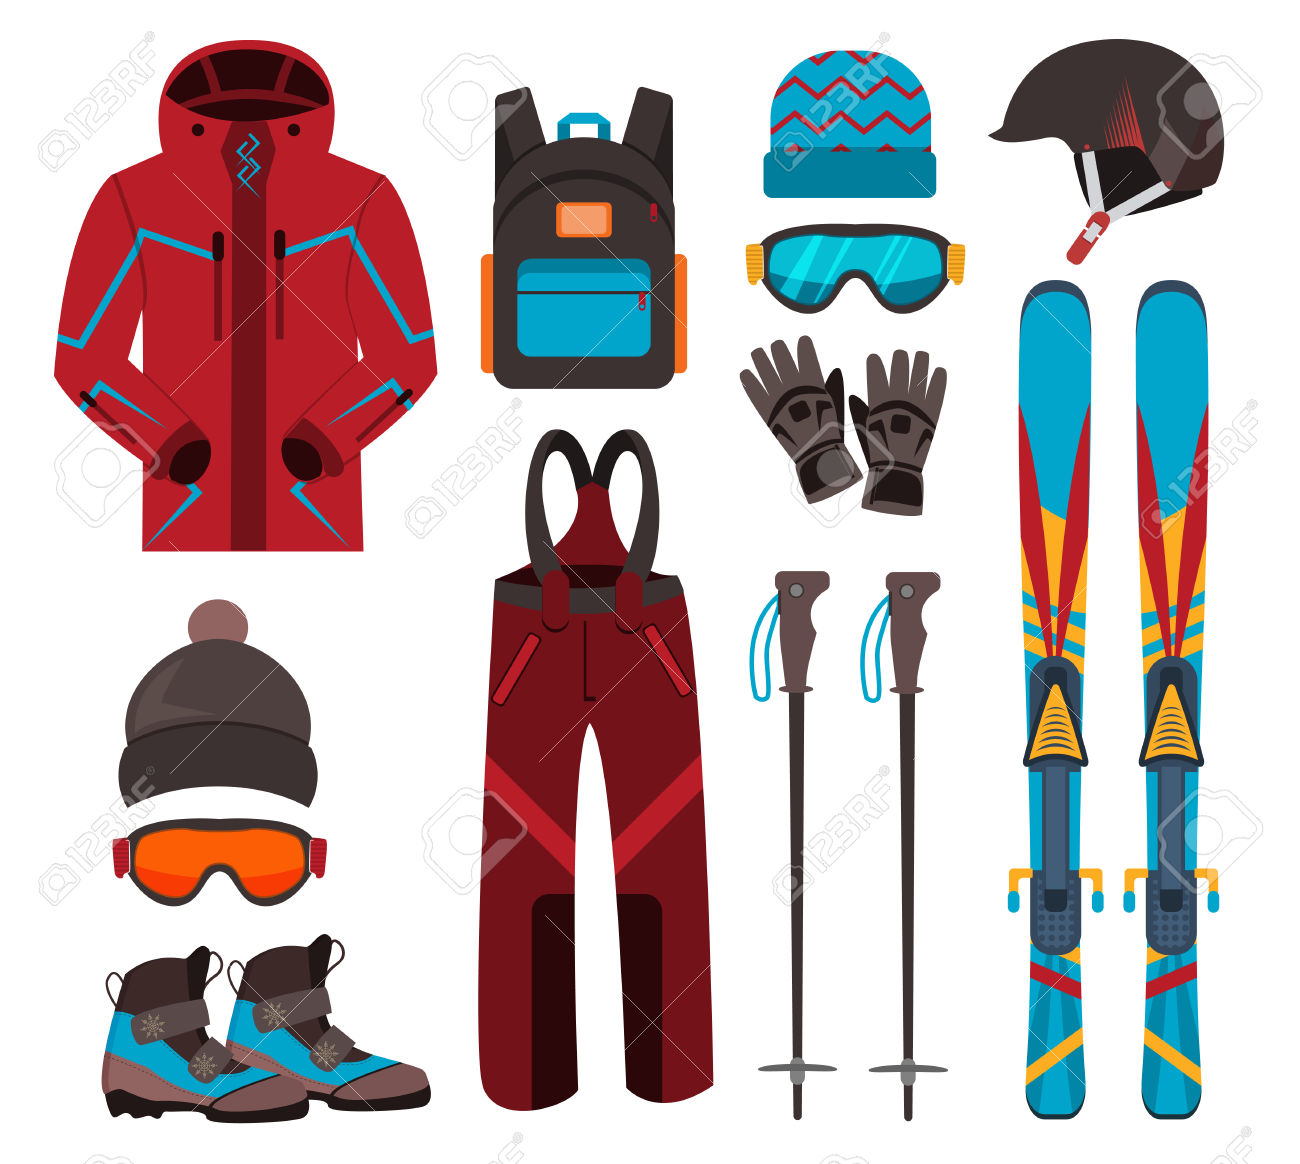 Skiing Equipment Vector Icons. Set Skis And Ski Poles. Winter.